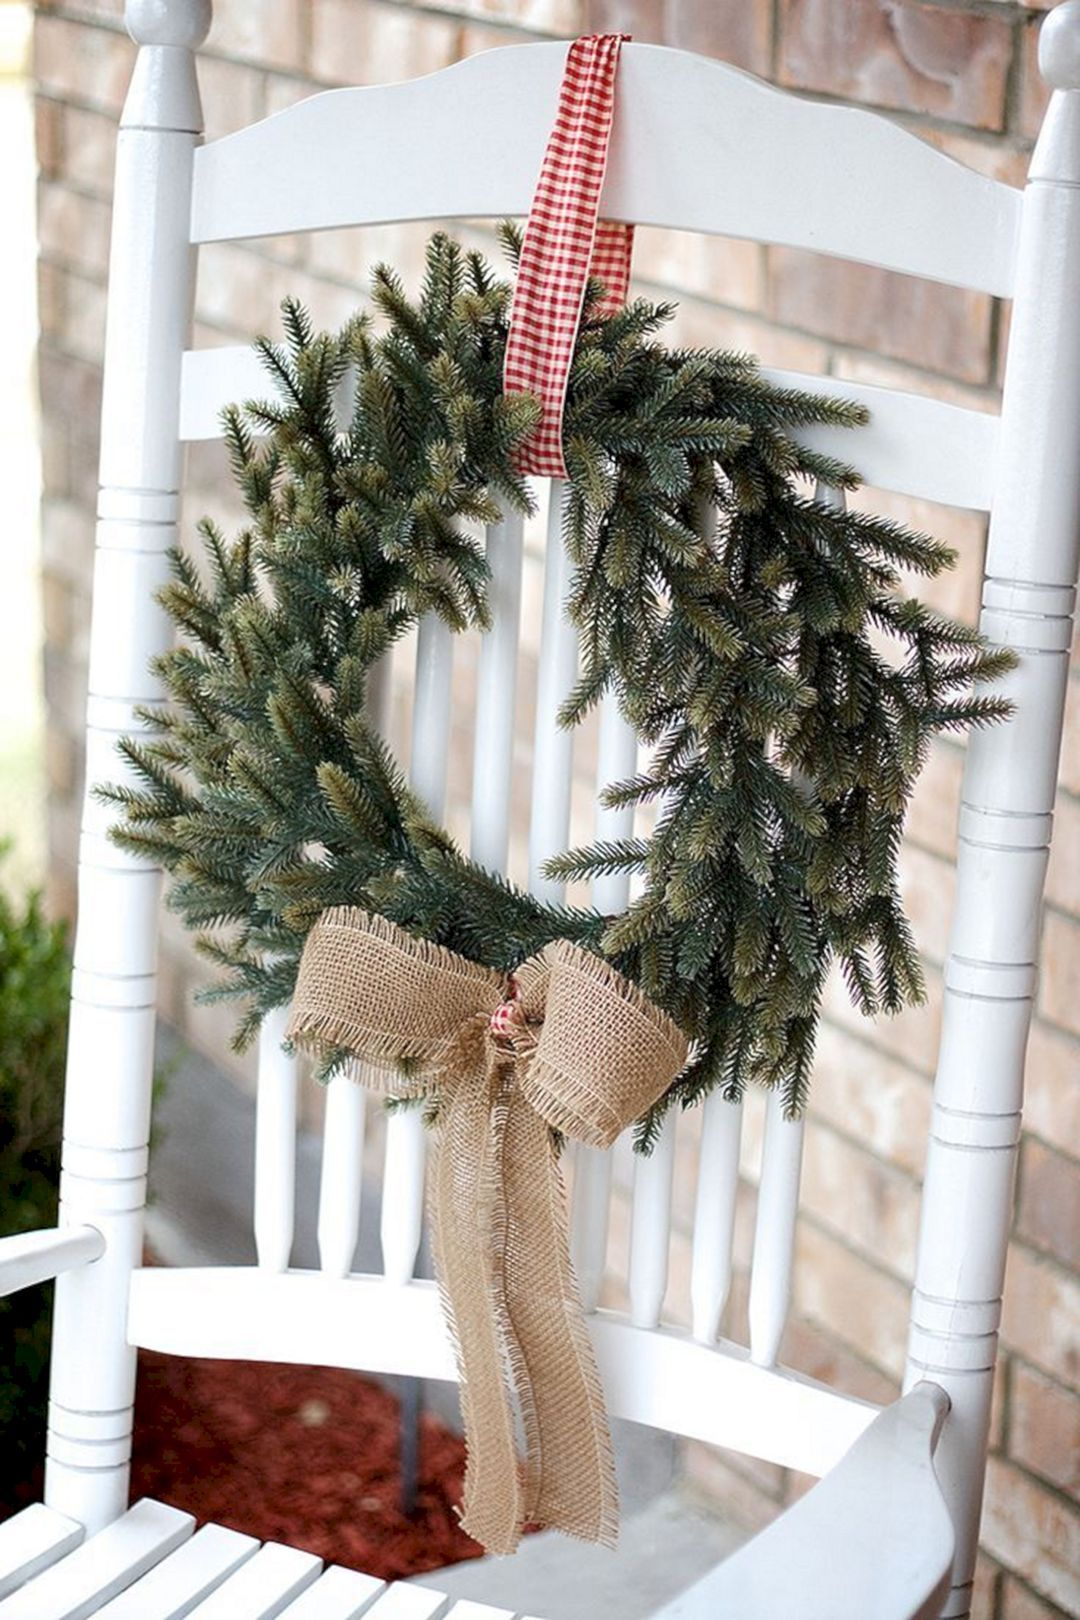 50 Amazing Outdoor Christmas Decorations Digsdigs Front Porch Christmas Decor Country Christmas Decorations Christmas Decorations Diy Outdoor